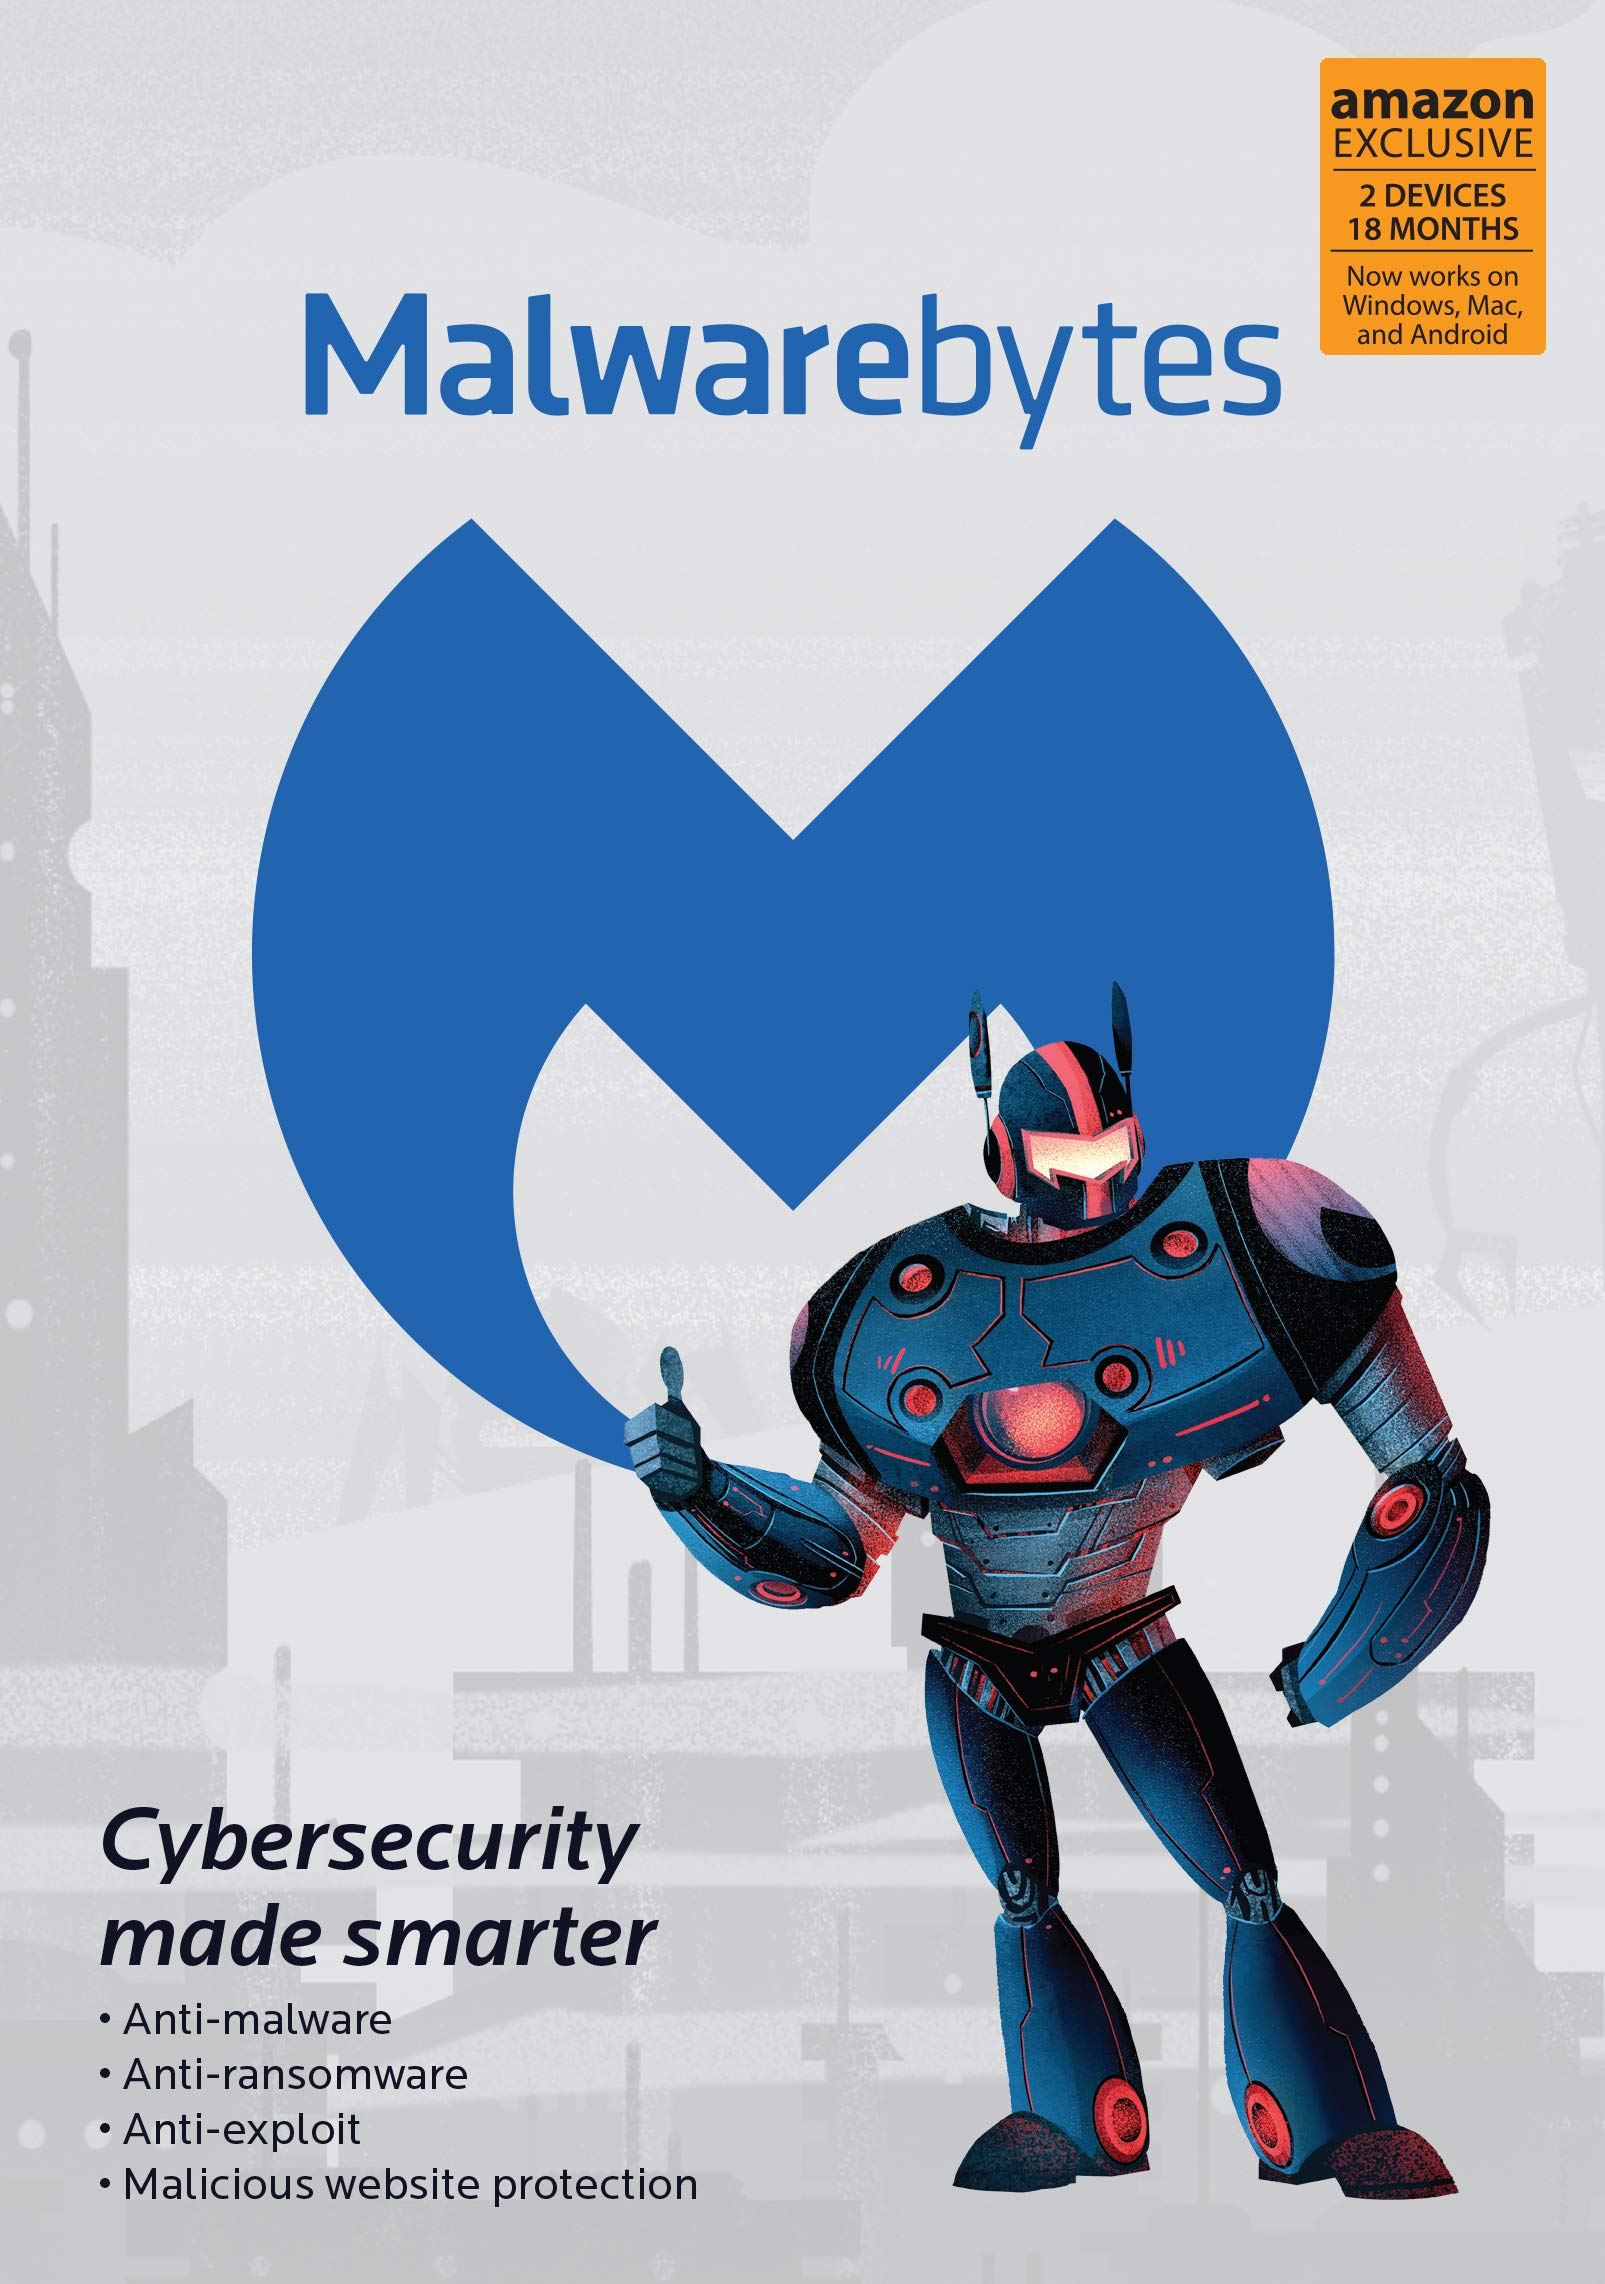 Malwarebytes 4.0 Latest Version   Amazon Exclusive   18 Months, 2 Devices (PC, Mac, Android) [software_key_card]…